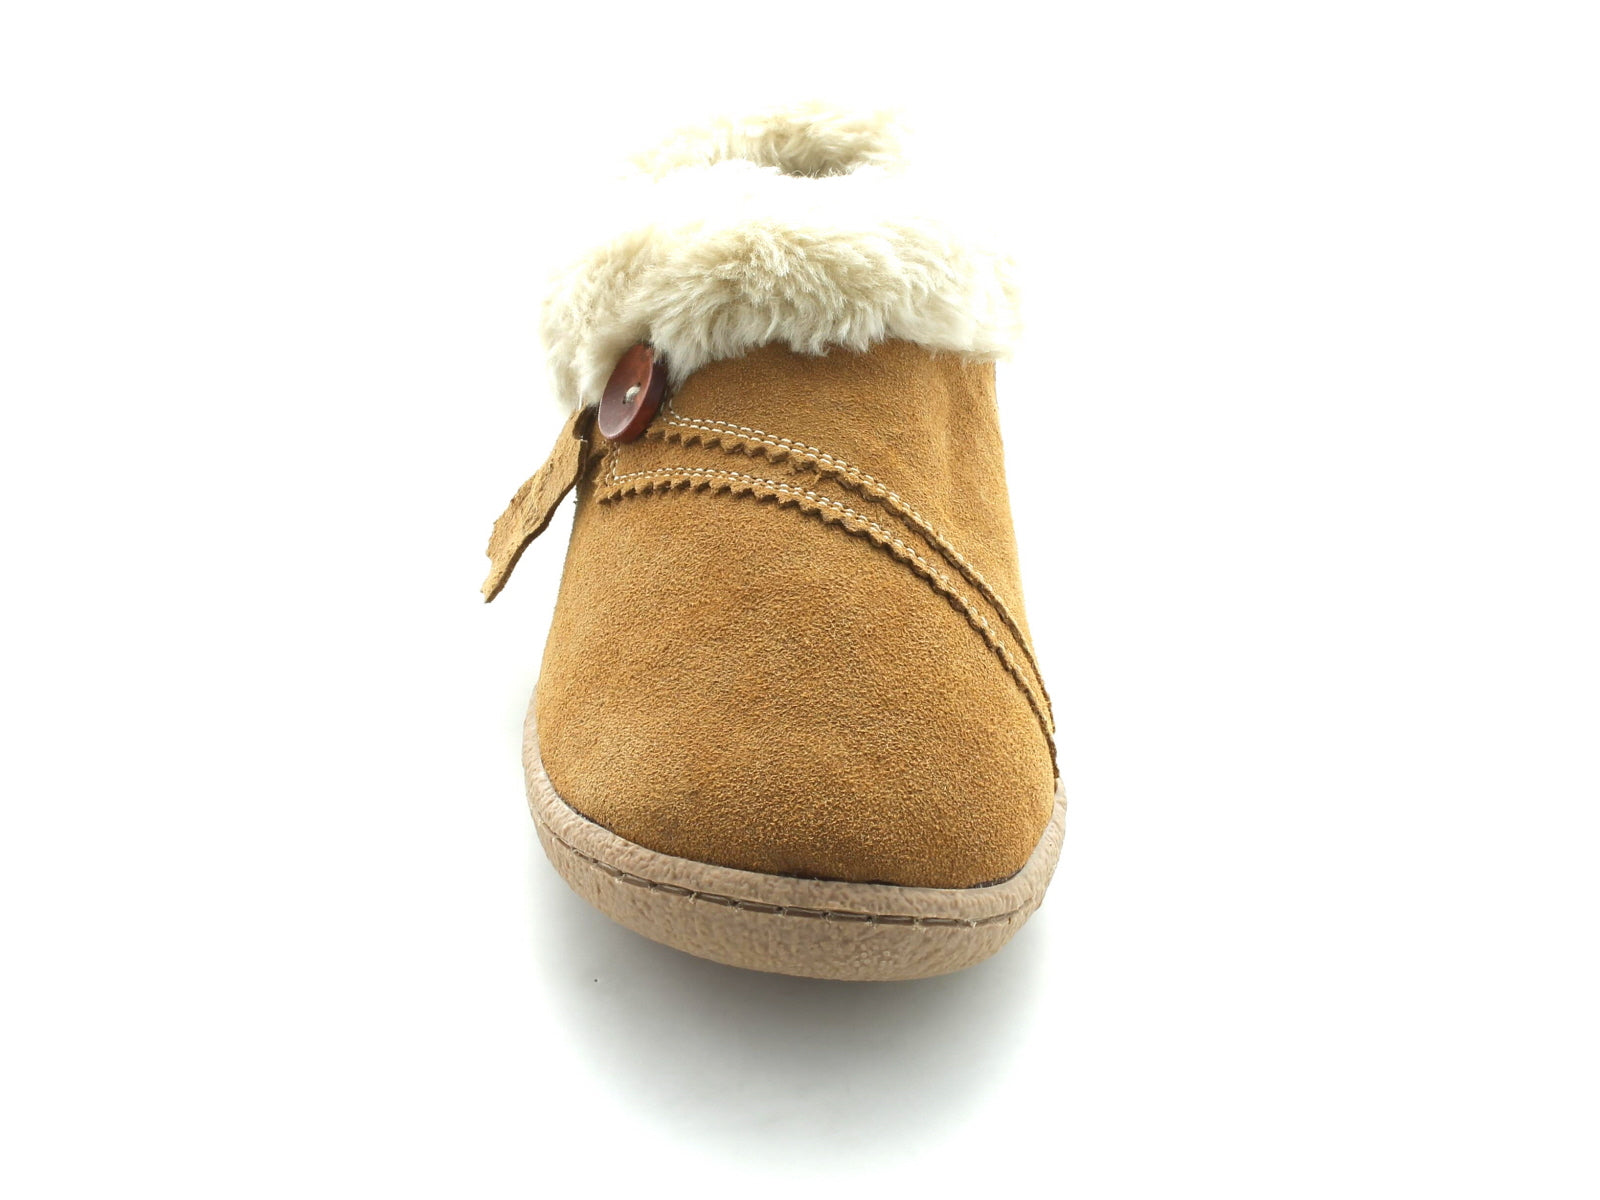 Clarks Eskimo Snow in Tan Suede front view